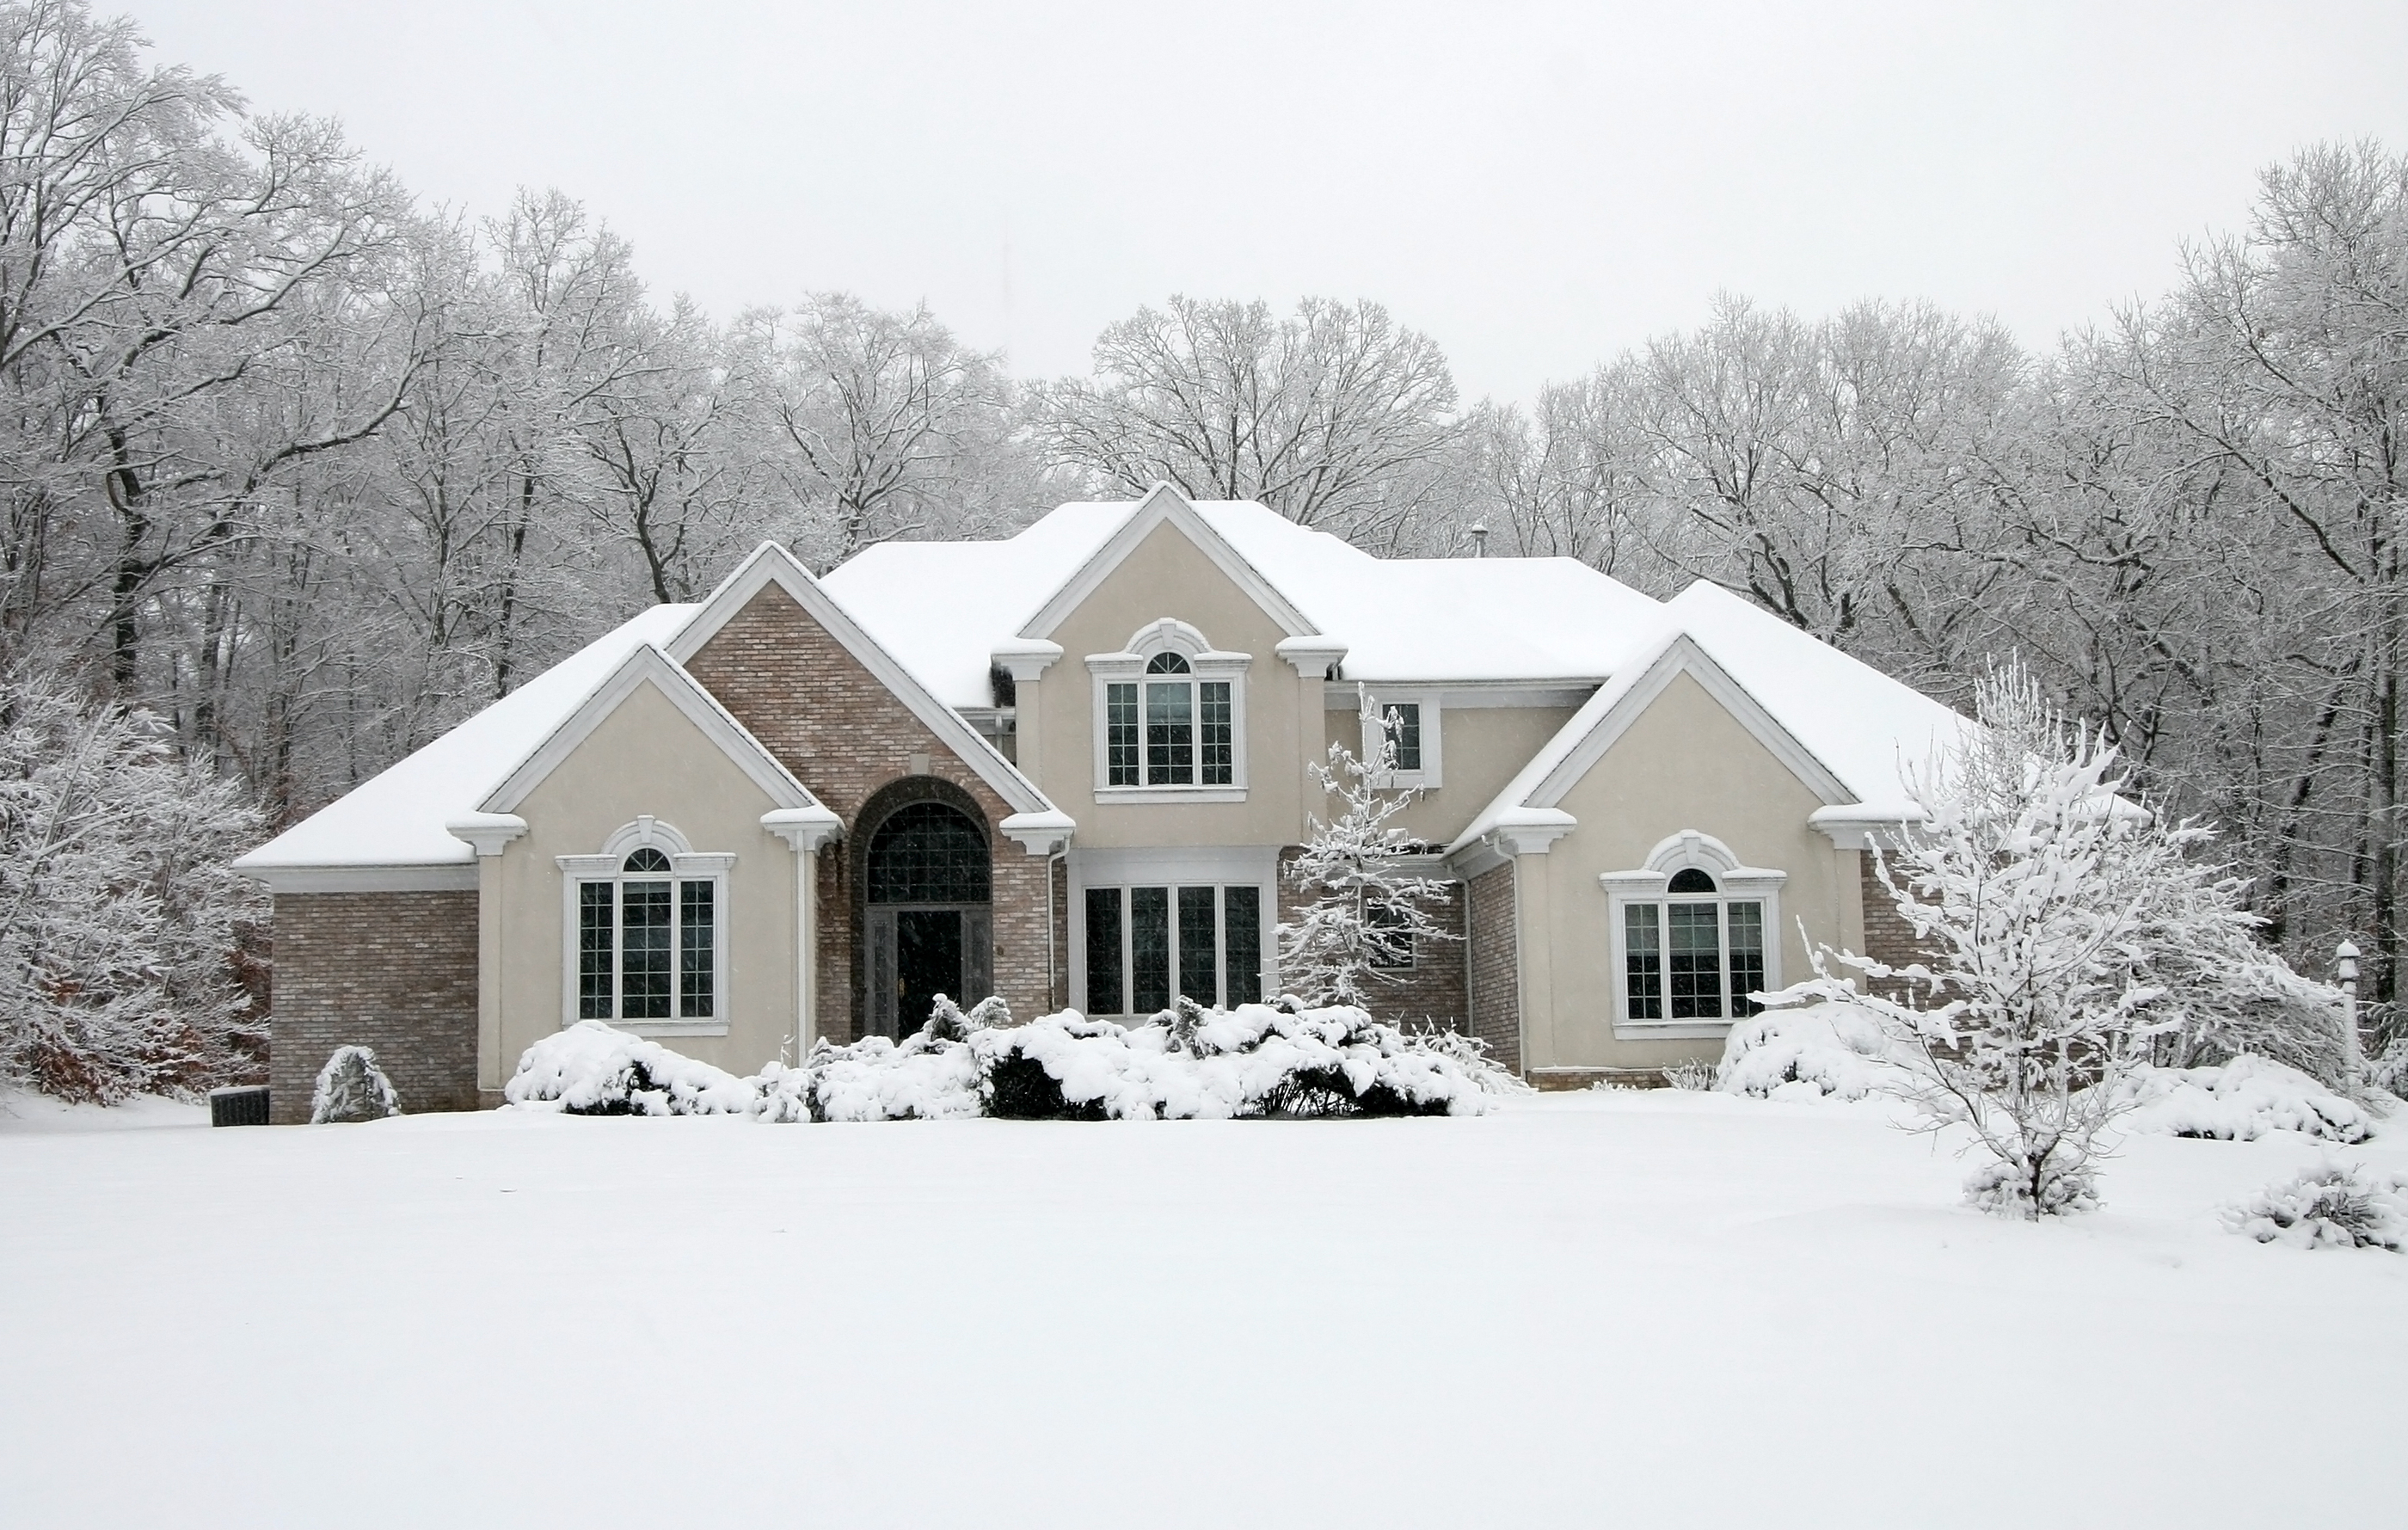 Snowy House - The Morty Blog